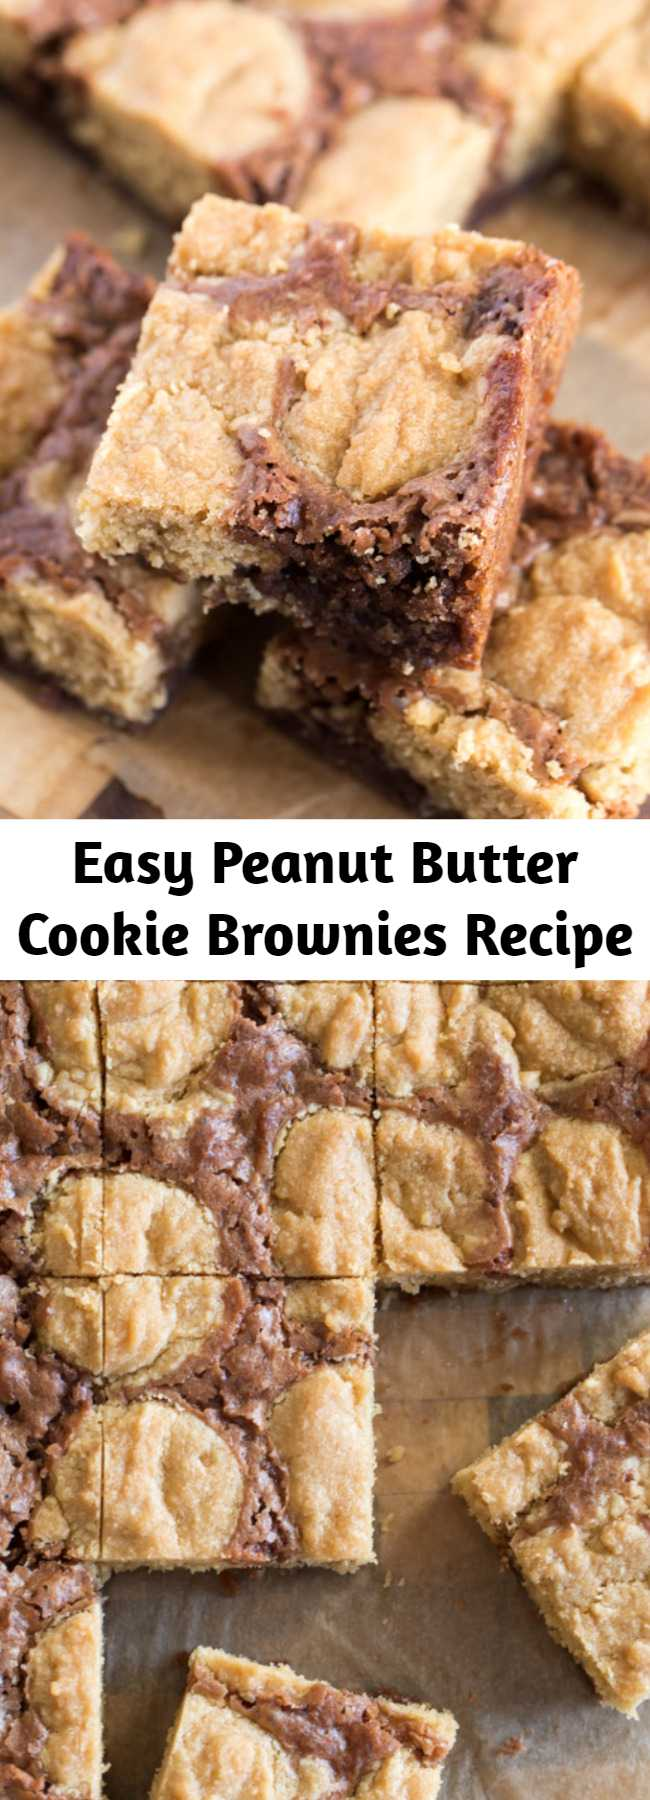 Easy Peanut Butter Cookie Brownies Recipe - An easy homemade brownie batter studded with globs of peanut butter cookie dough for a chocolate peanut butter lovers dream come true. These little squares did NOT last long my friends.